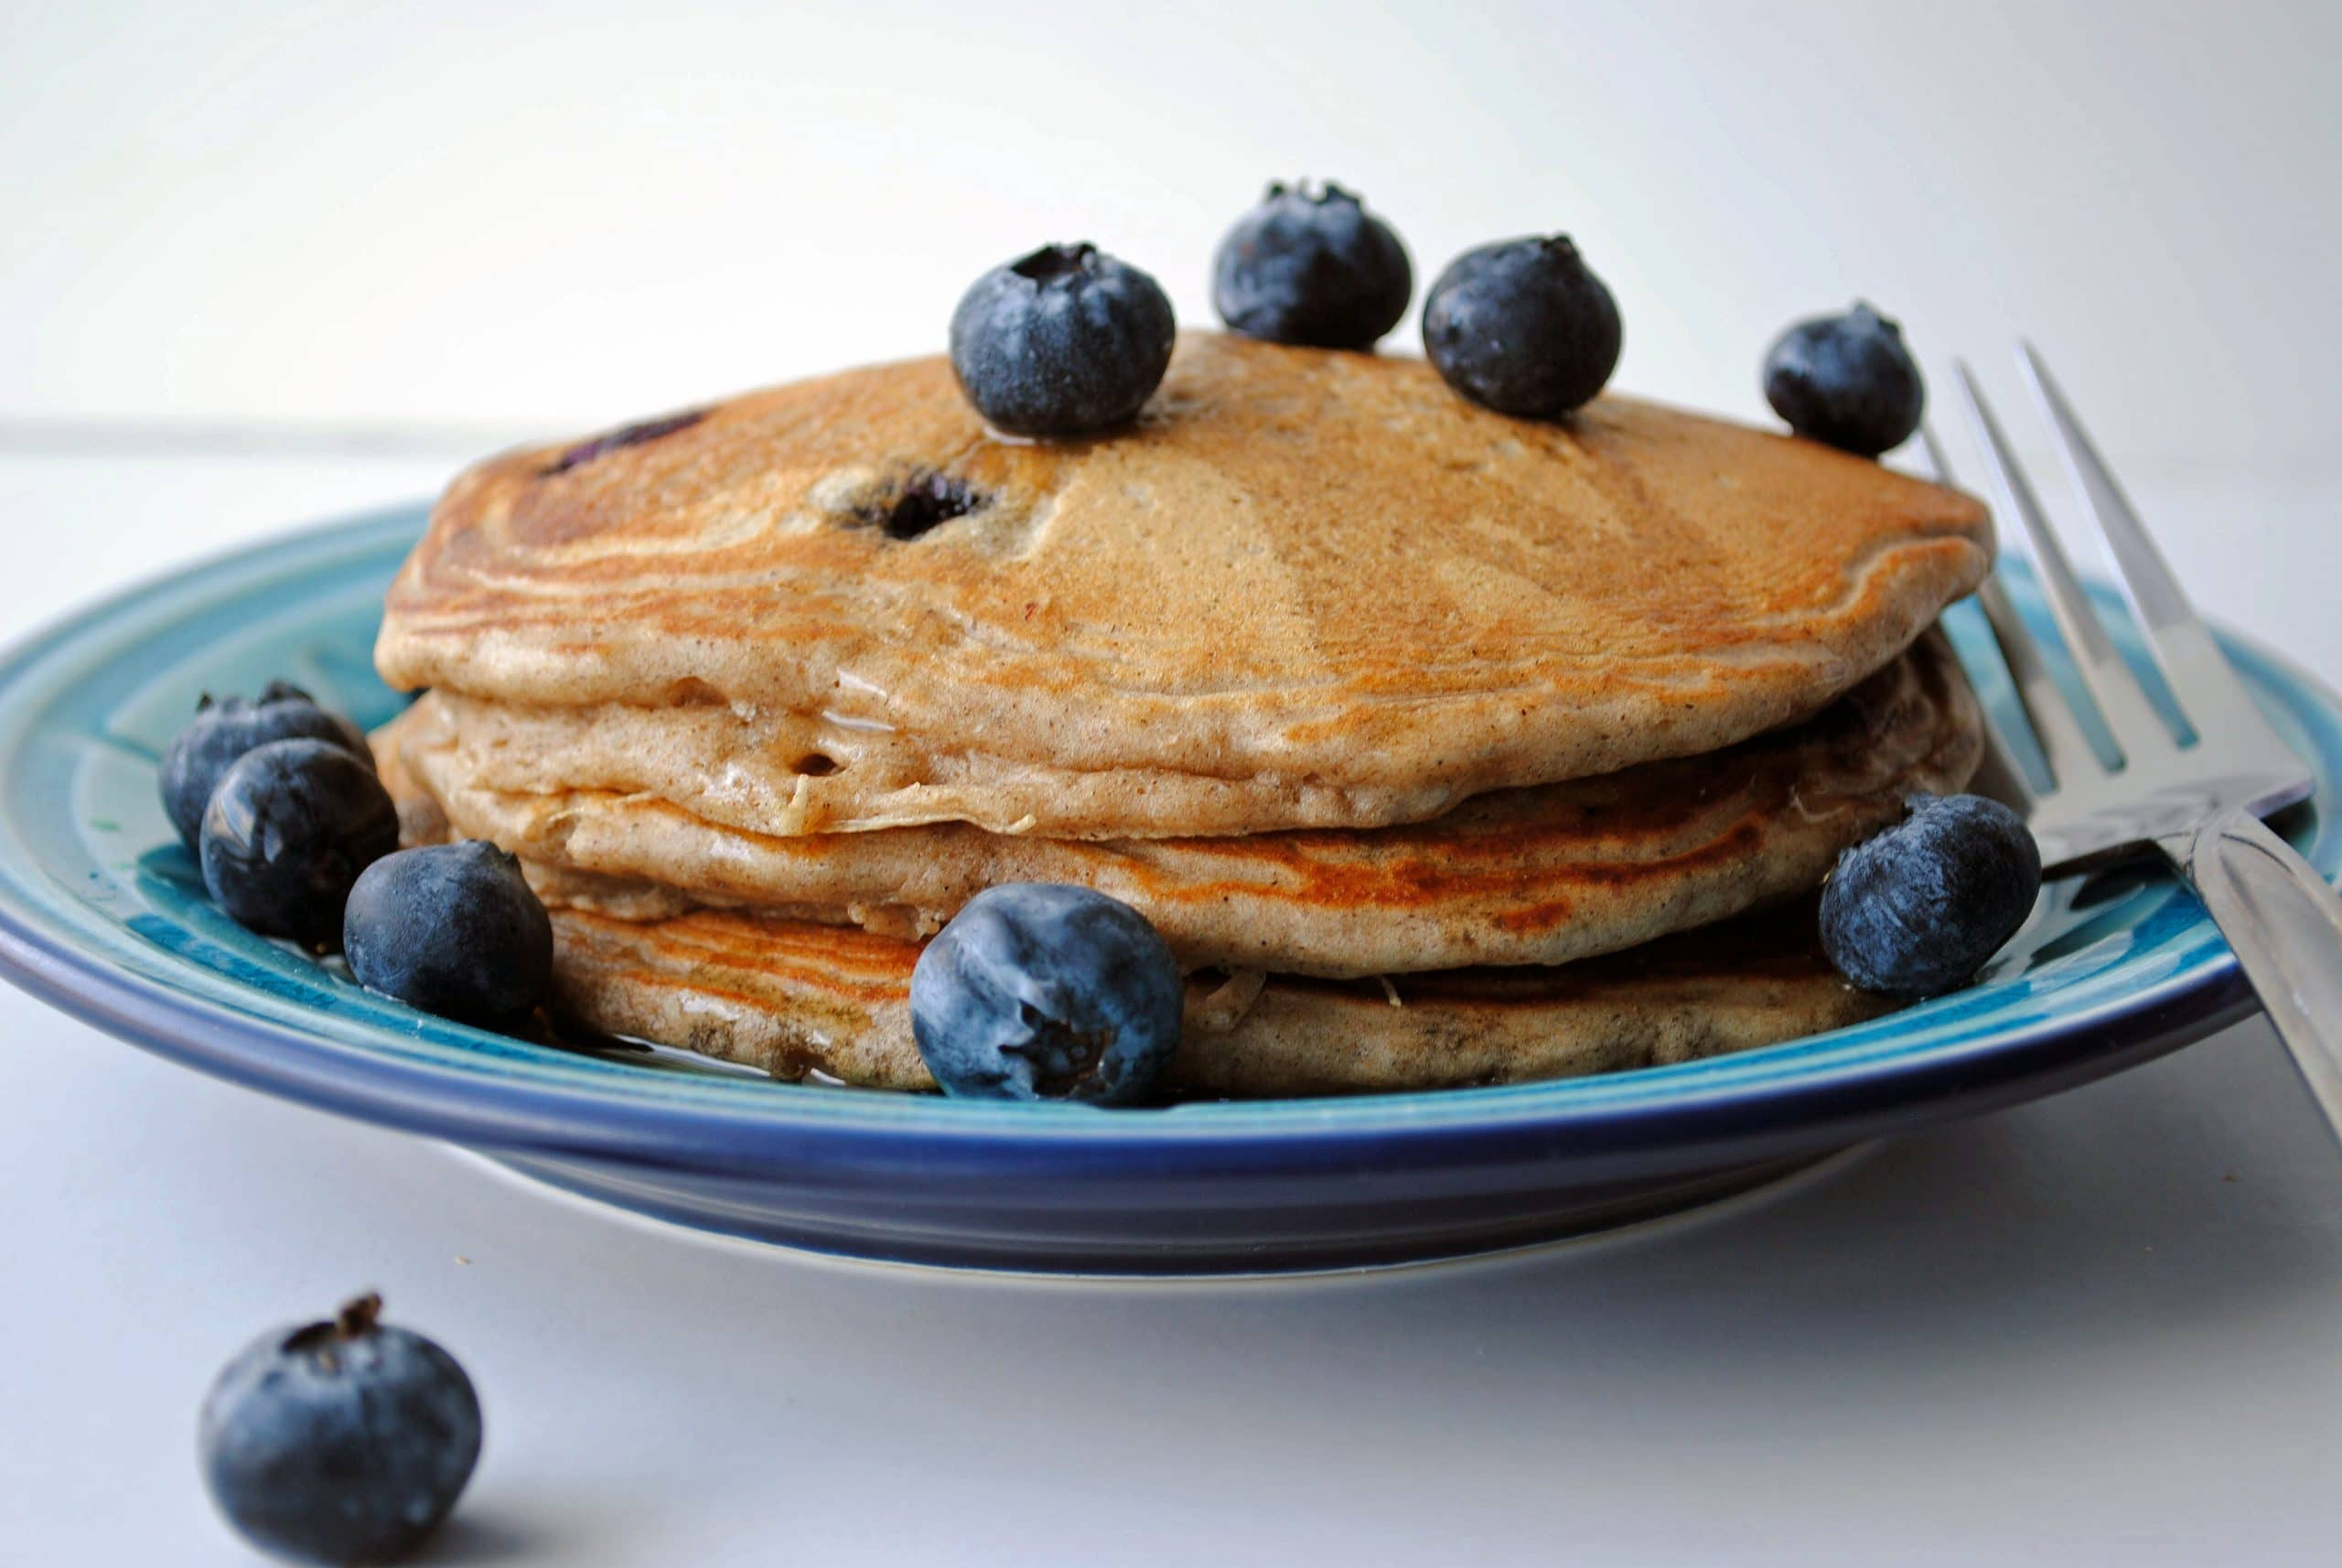 Blueberry Buckwheat Pancakes The Cake Chica